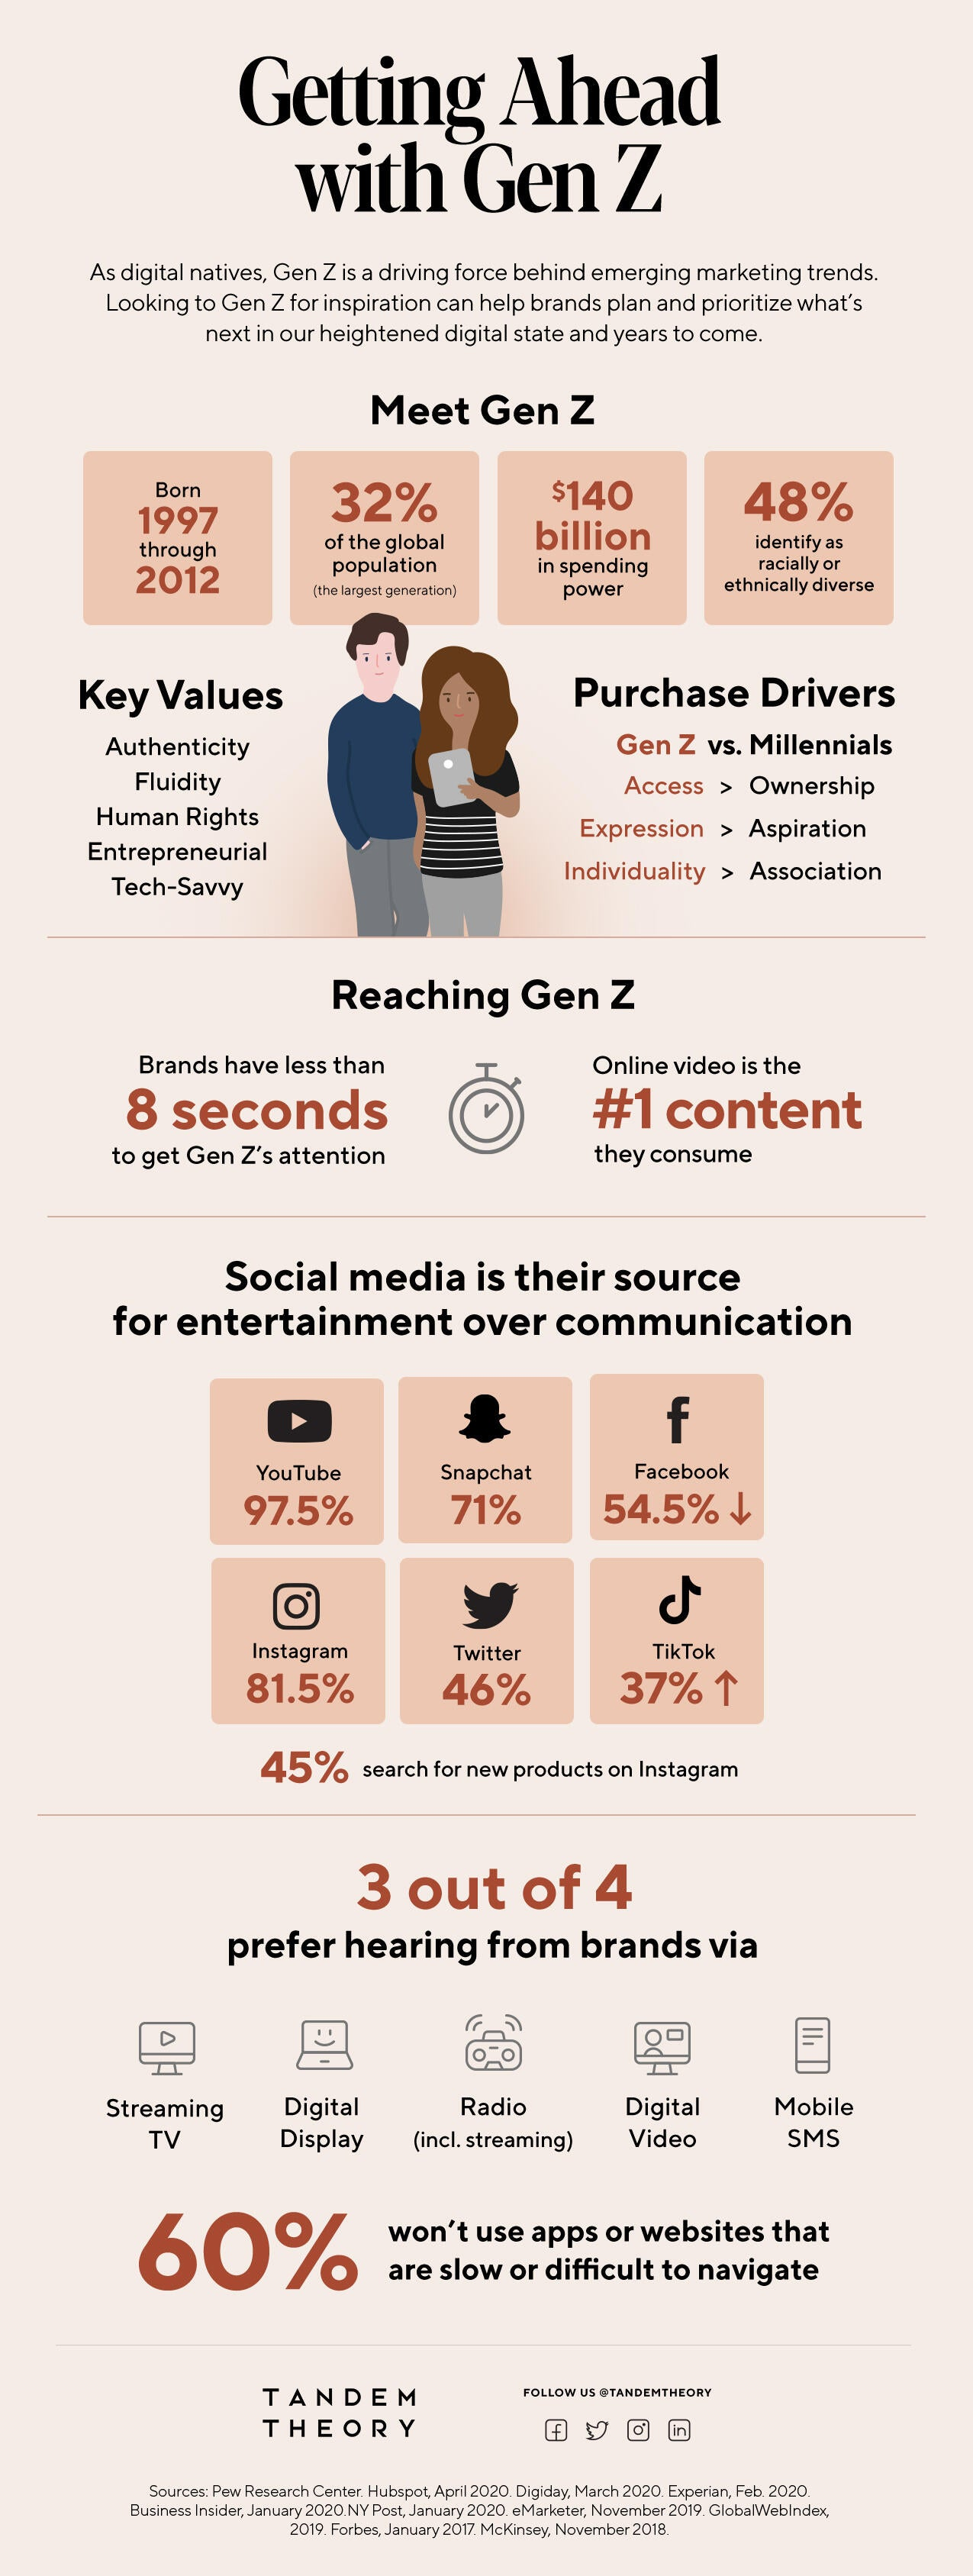 How Your Brand Can Get Ahead with Gen Z Image